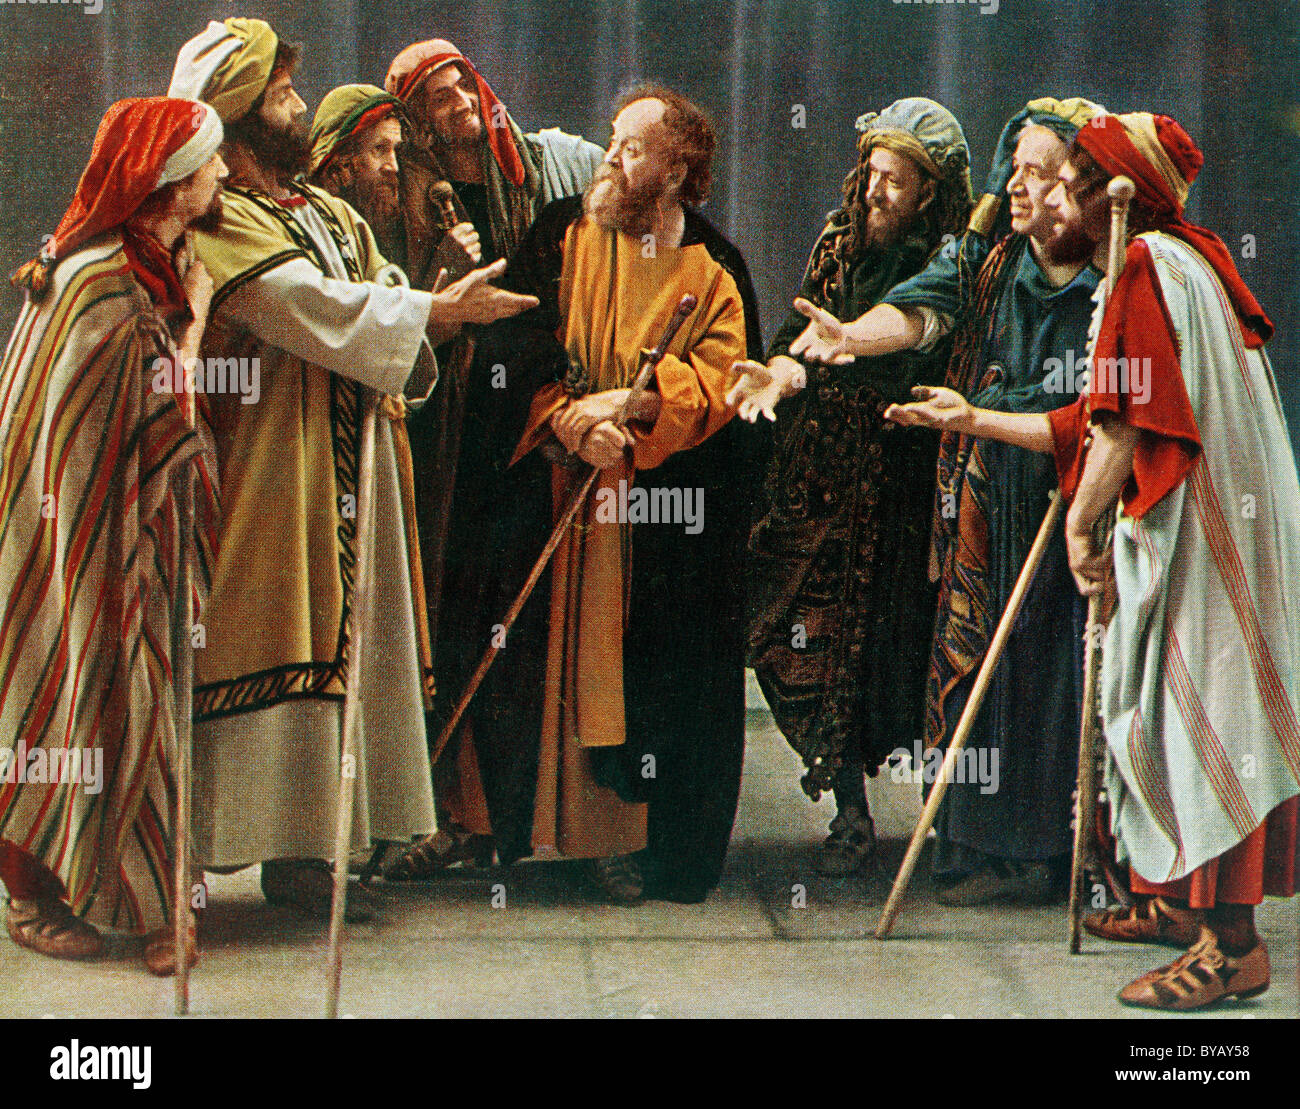 Judas and the merchants, colour post card from a Uvatypie template, Oberammergau Passion Play 1930, Upper Bavaria, - Stock Image